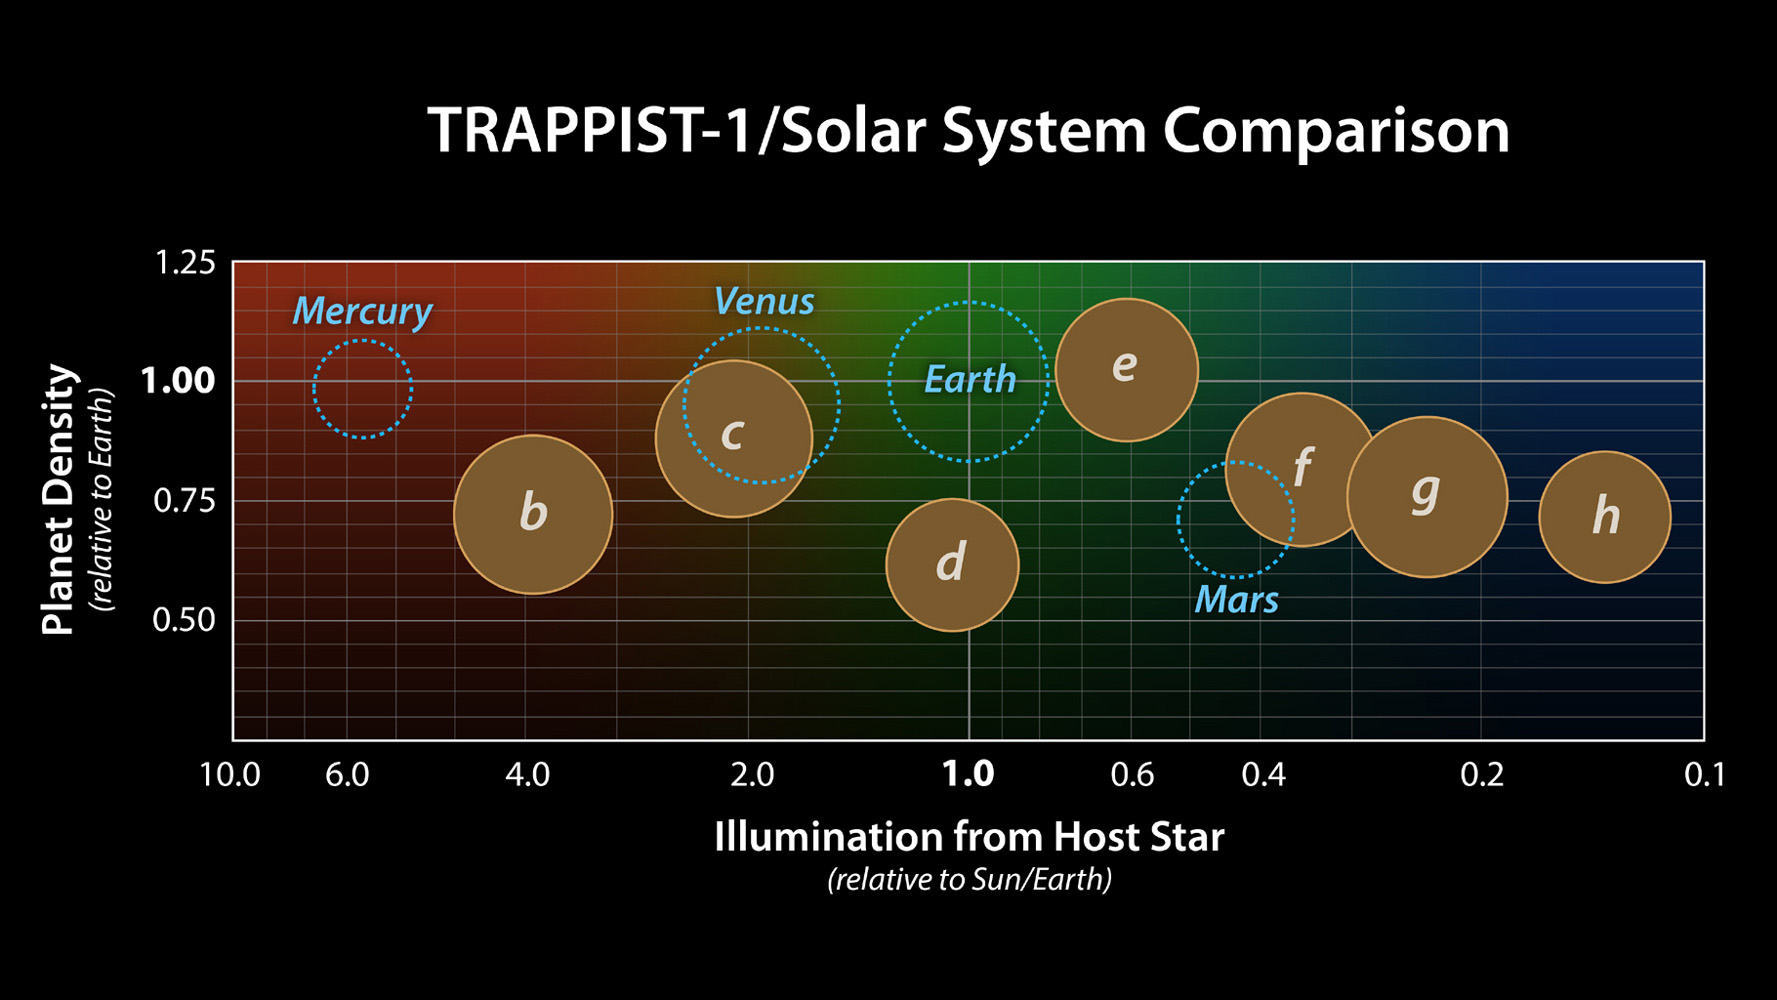 This graph presents known properties of the seven TRAPPIST-1 exoplanets, labeled b through h, showing how they stack up to the inner rocky worlds in our own solar system. Image Credit: NASA/JPL-Caltech